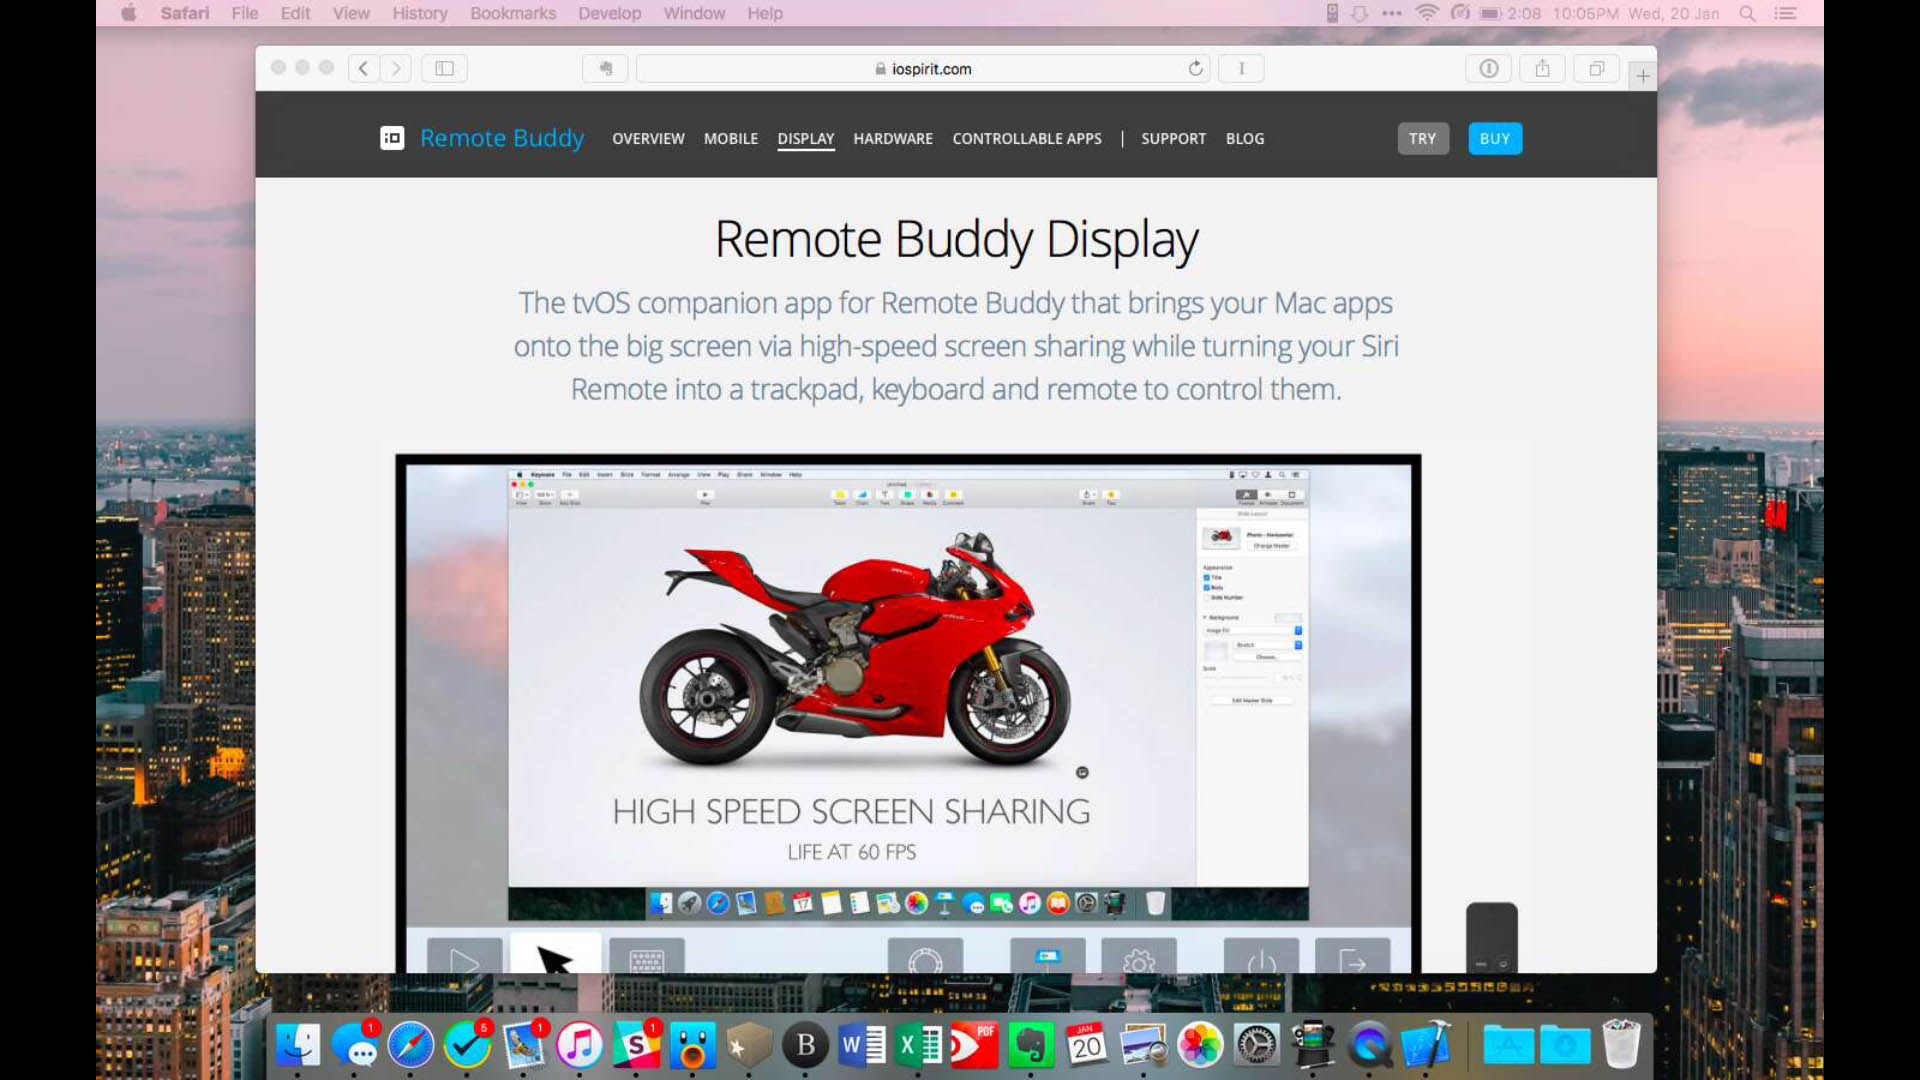 When you use Remote Buddy Display, it mirrors your Mac in full screen.